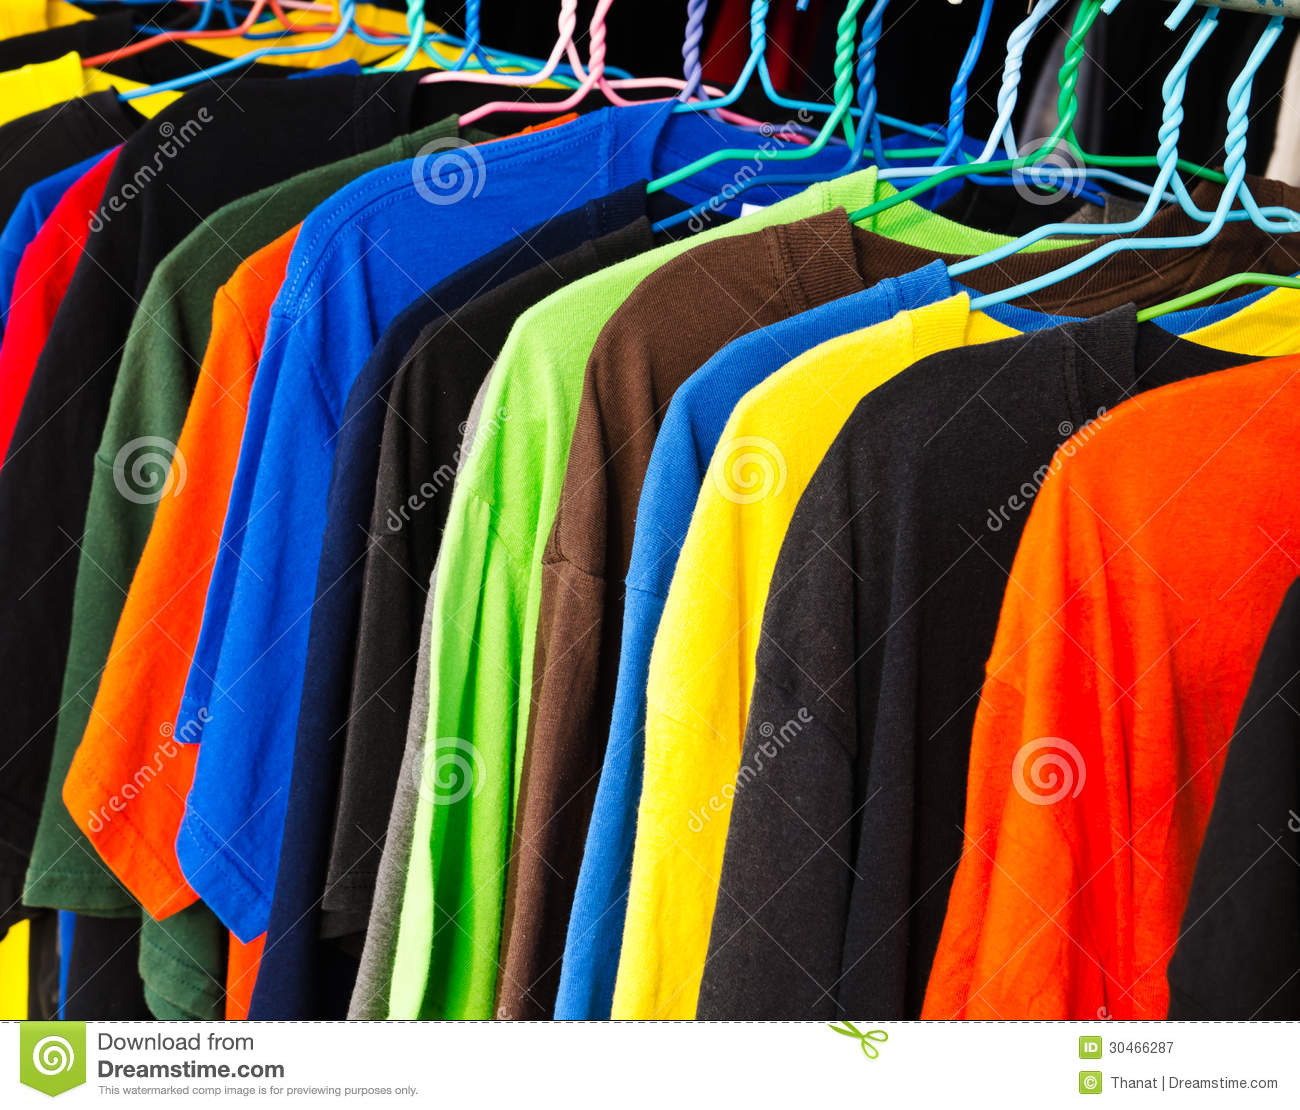 Royalty Free Stock Photography: Clothing retail store